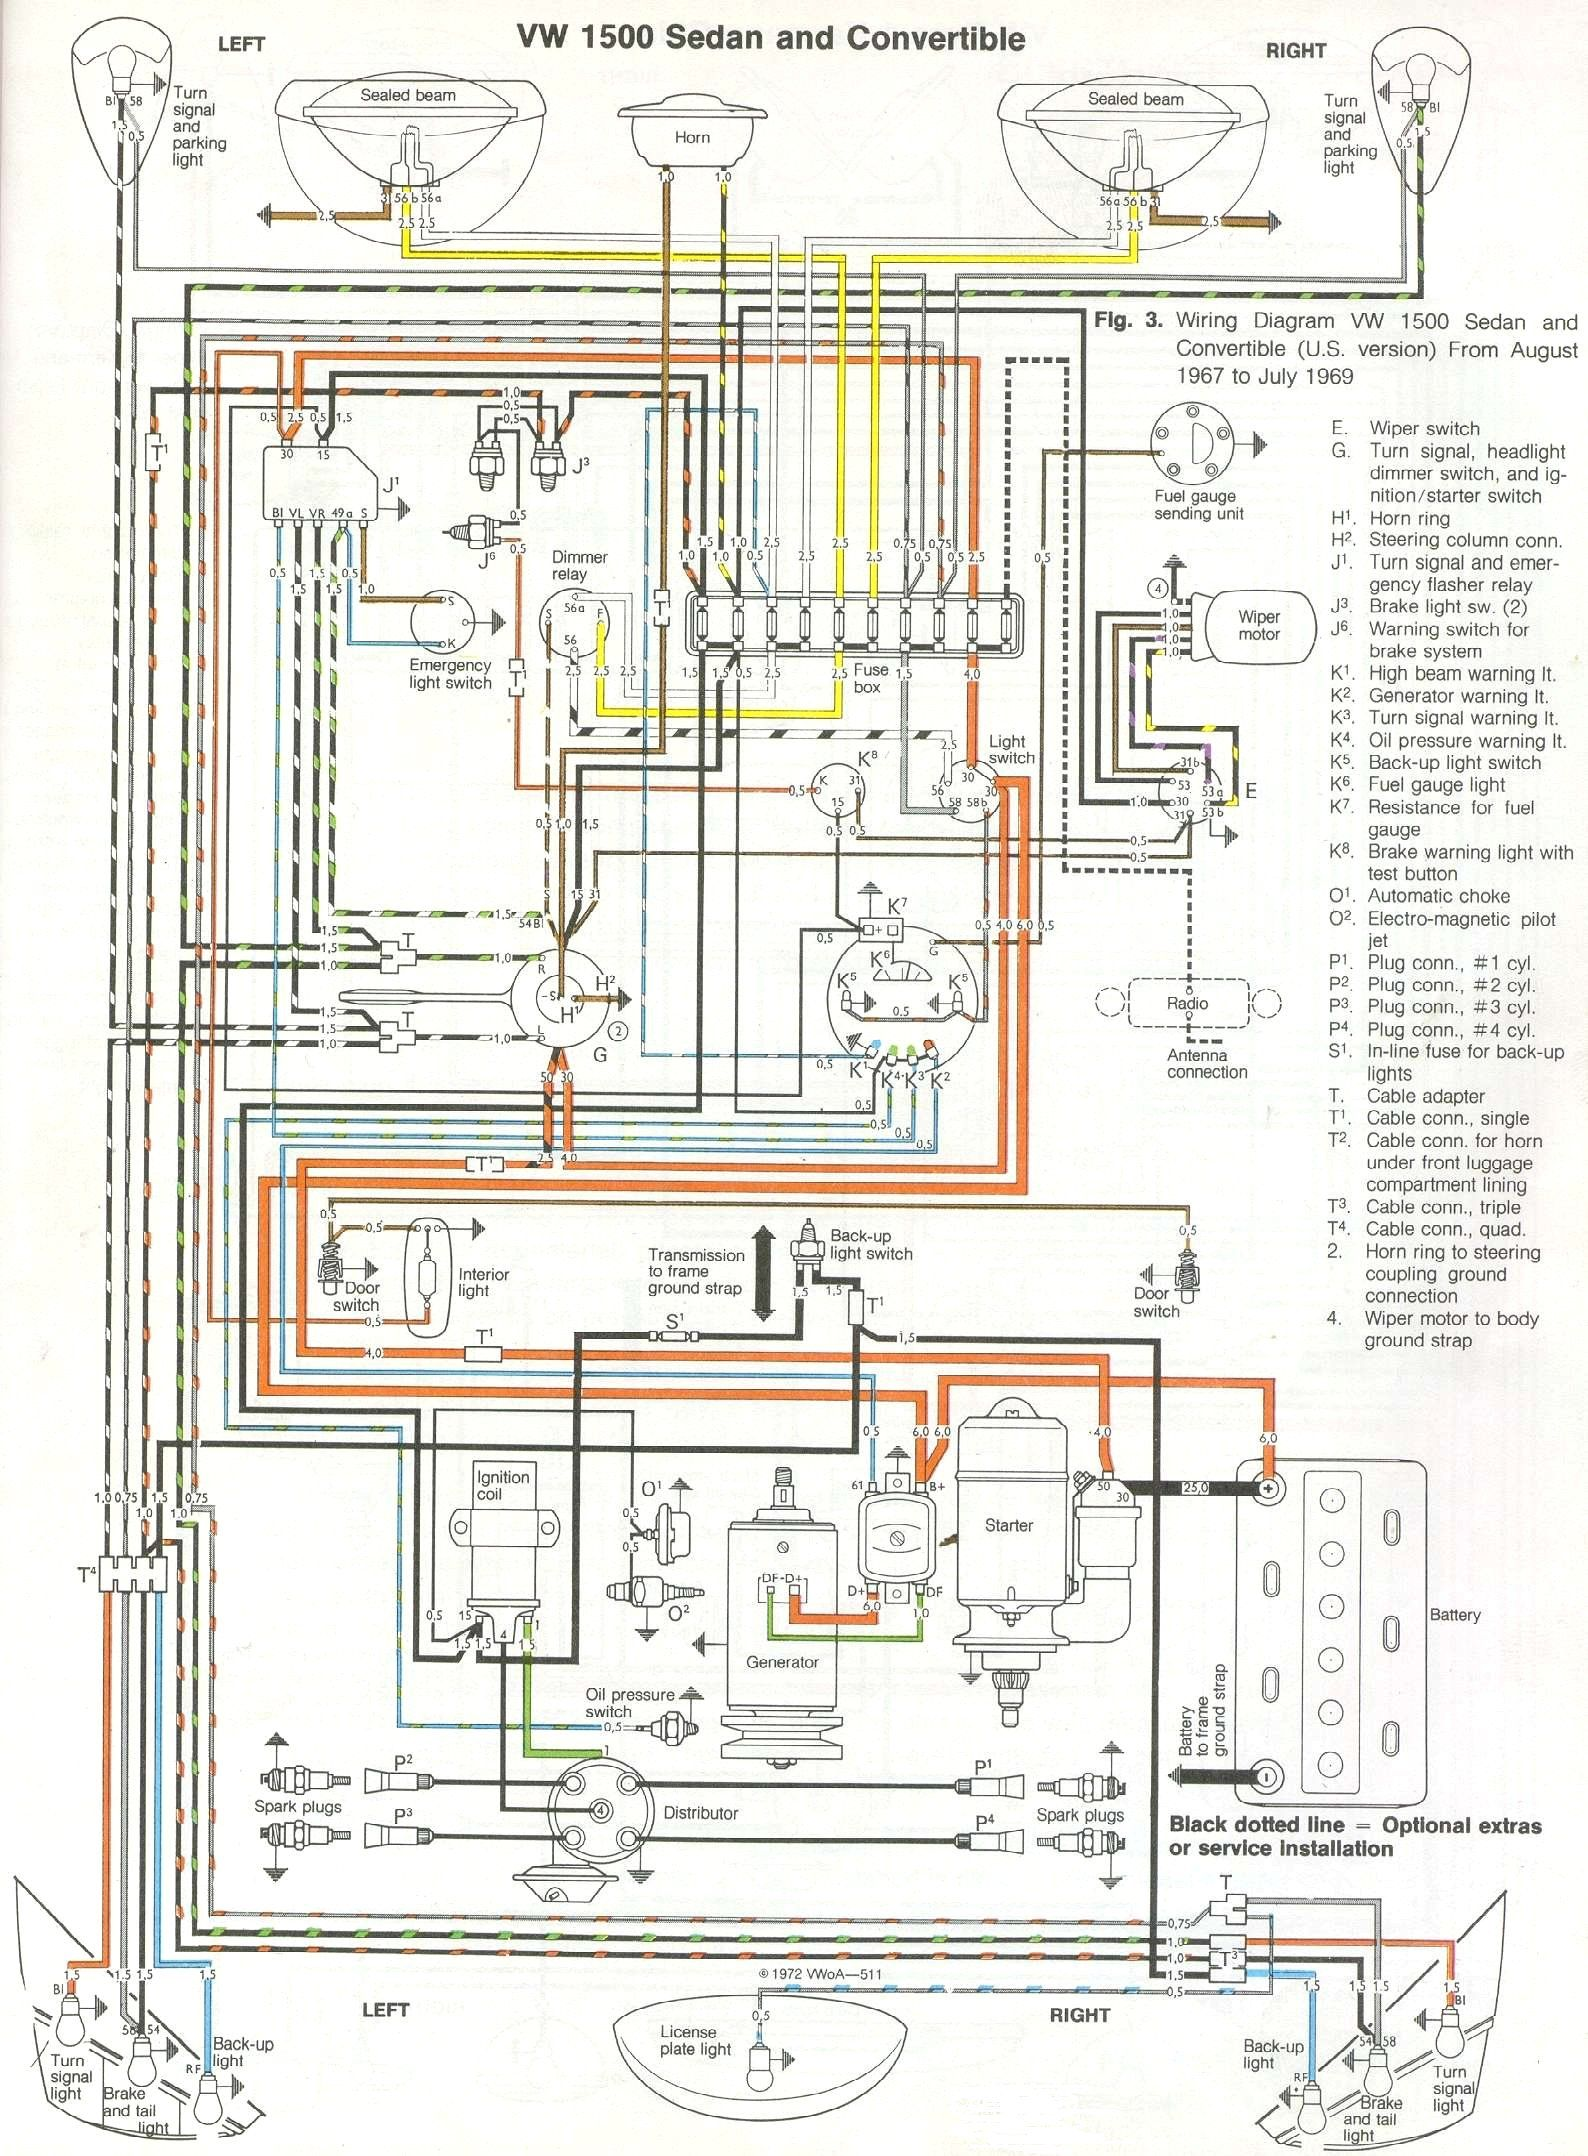 1968 Vw Bug Wiring - 6.lio.savic-family.de •  Vw Bug Wiring Diagrams on 1972 vw beetle fuse box diagram, 1966 chevrolet impala wiring diagram, 12 volt switch wiring diagram, 1966 chevy impala wiring diagram, vw kit car wiring diagram, 1966 ford wiring diagram, 1965 vw wiring diagram, 1966 porsche wiring diagram, 67 vw wiring diagram, 1972 vw beetle engine diagram, 69 beetle wiring diagram, vw engine wiring diagram, 1966 mustang wiring diagram, 1968 vw beetle engine diagram, vw beetle wiring diagram, classic beetle wiring diagram, 1966 pontiac gto wiring diagram, 1966 corvette wiring diagram, 1974 super beetle wiring diagram, 1956 vw wiring diagram,